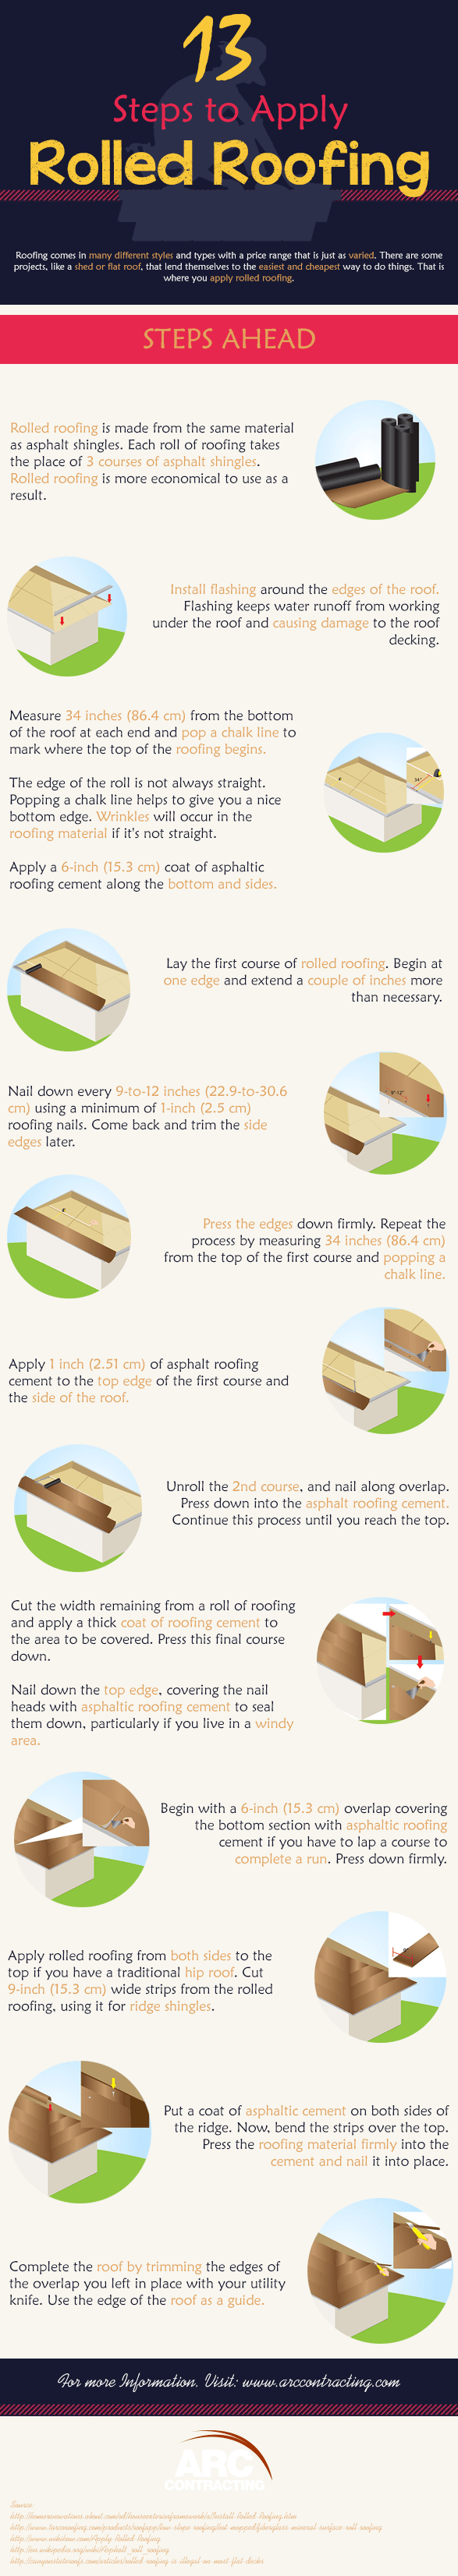 13-steps-to-apply-rolled-roofing_52599f02810fb